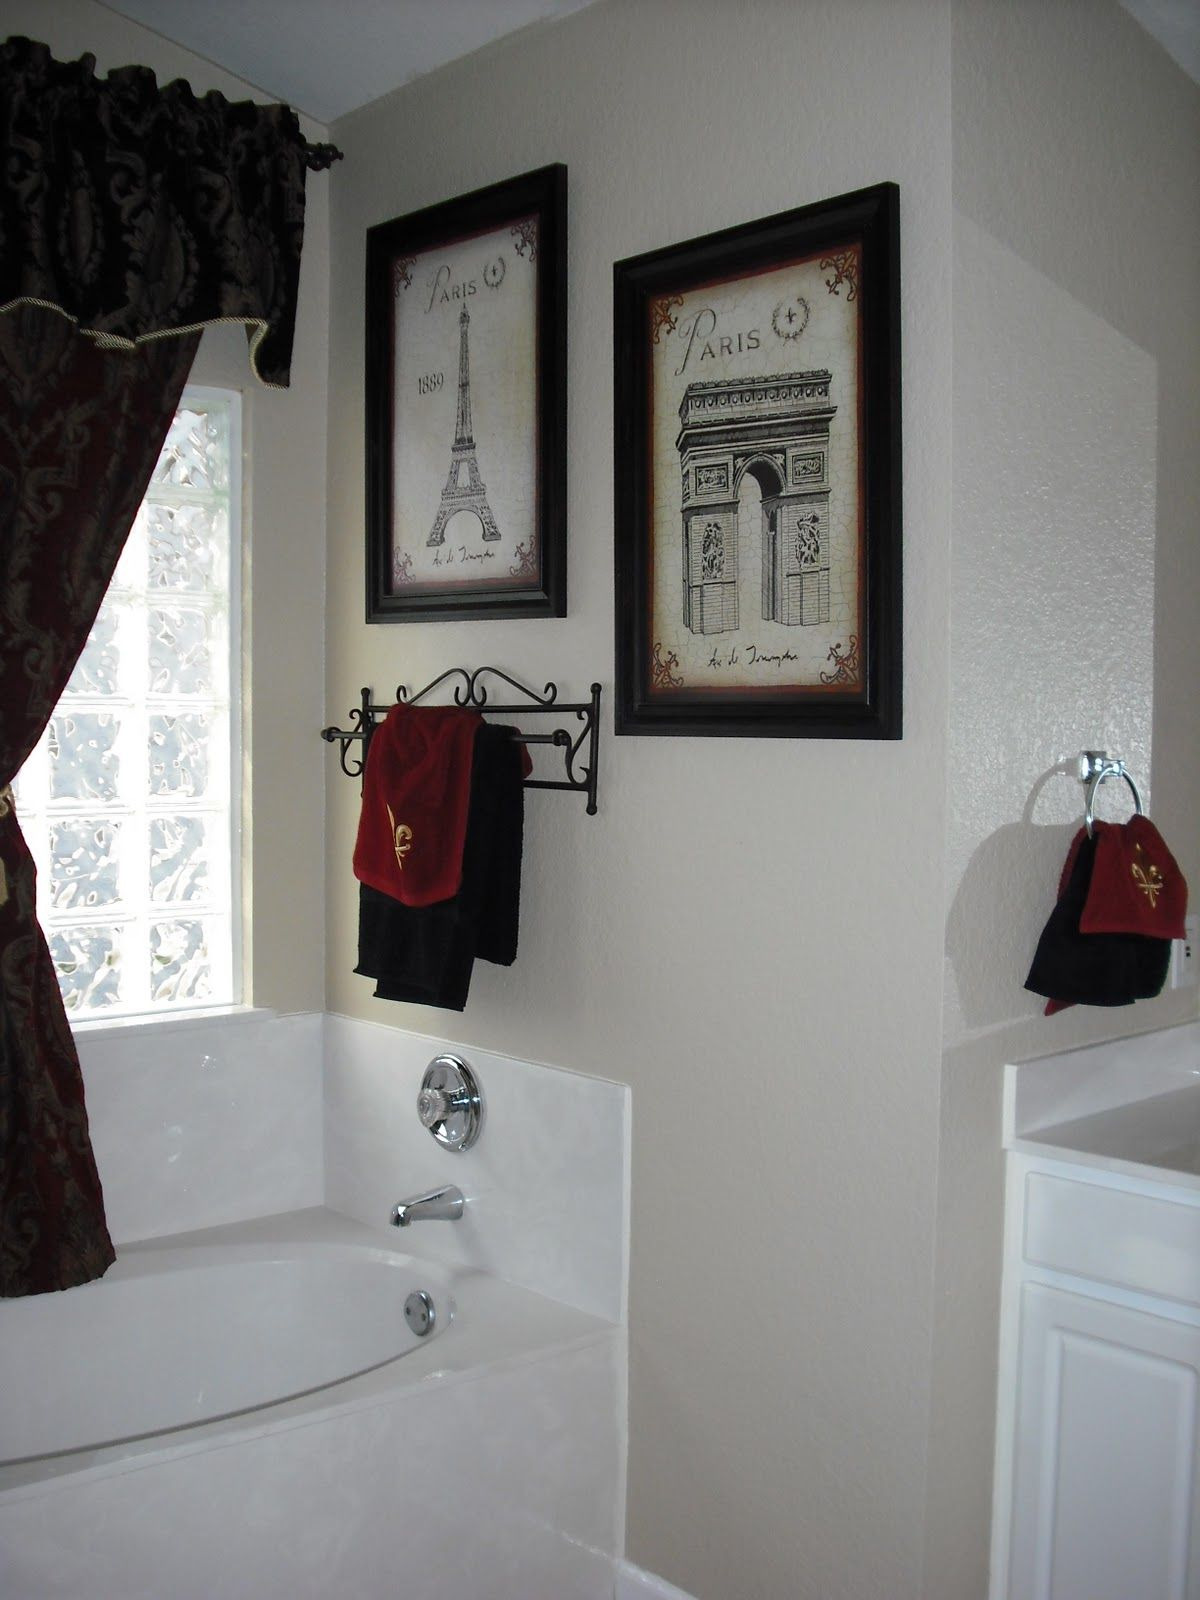 Paris themed Bathroom Decor Luxury Exactly What I Want for Master Bath Black and White Paris